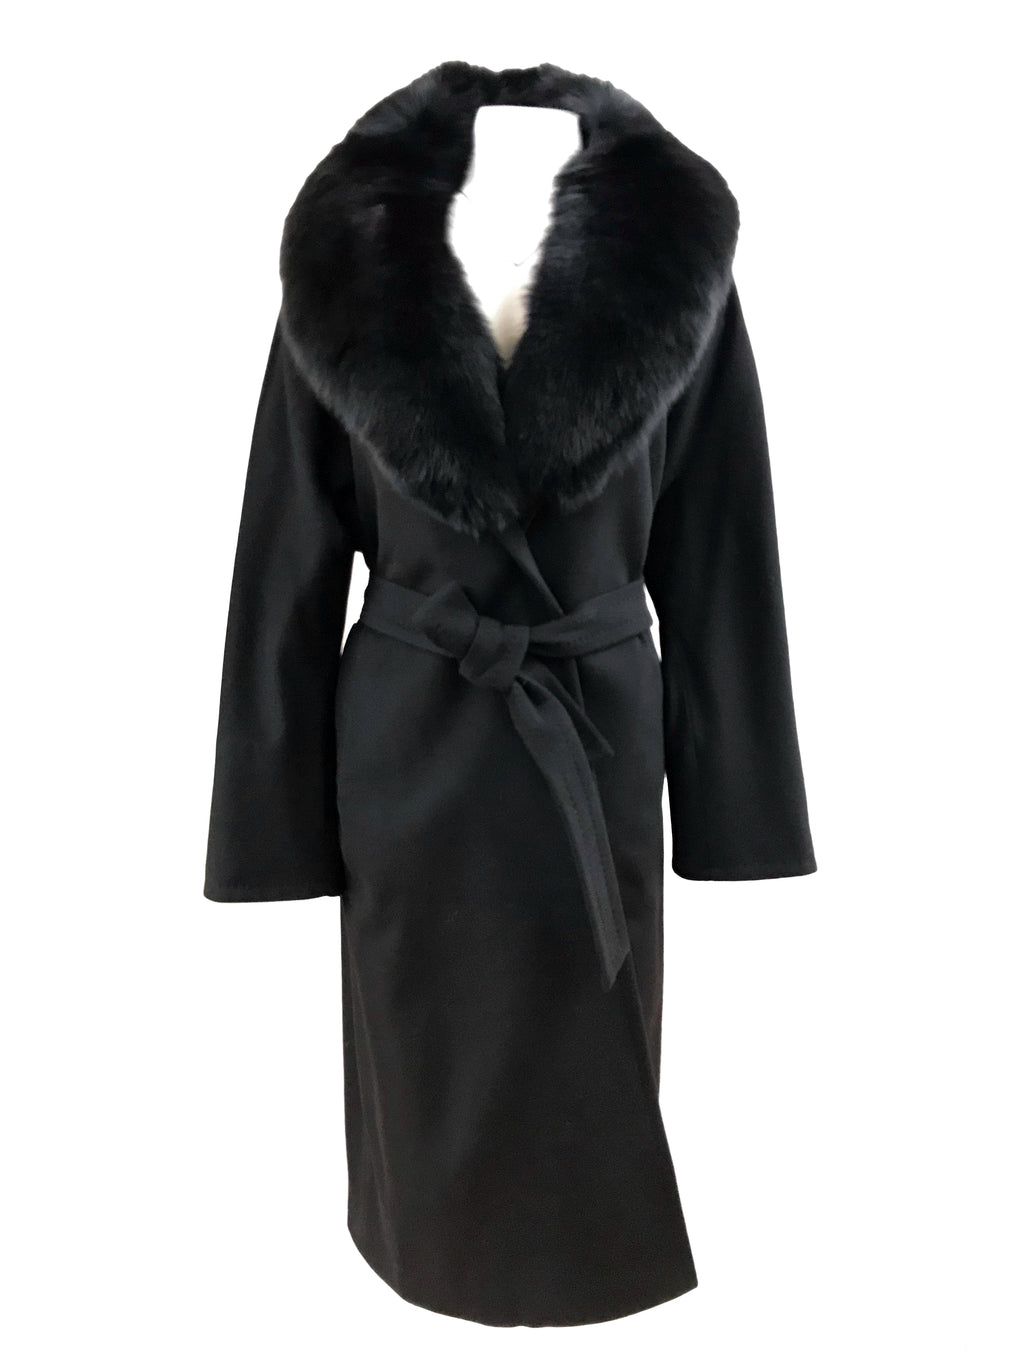 "46"" 100% Cashmere Coat with Detachable Fox Collar - Size Small"